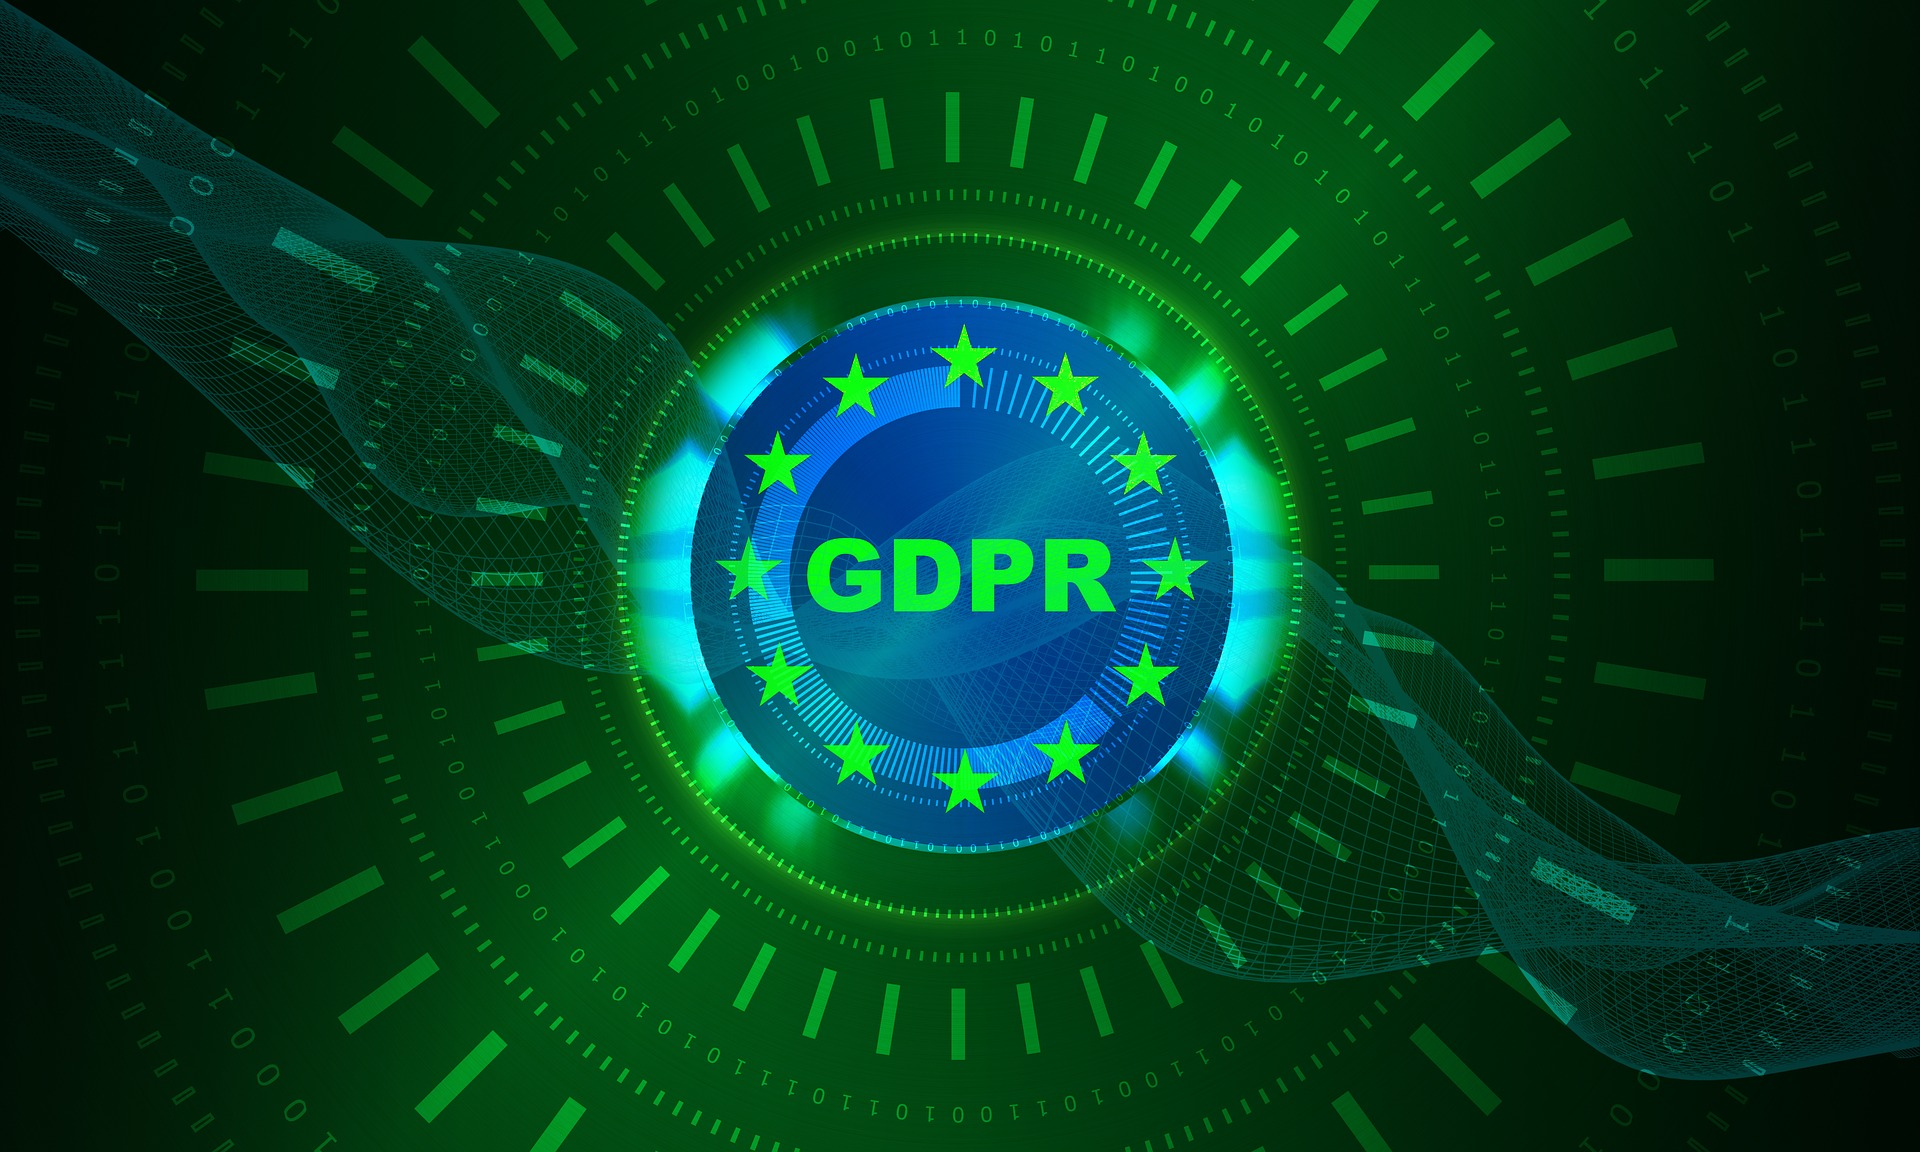 Silwood Technology launches Oracle e-Business suite and MS Dynamics GDPR starter packs